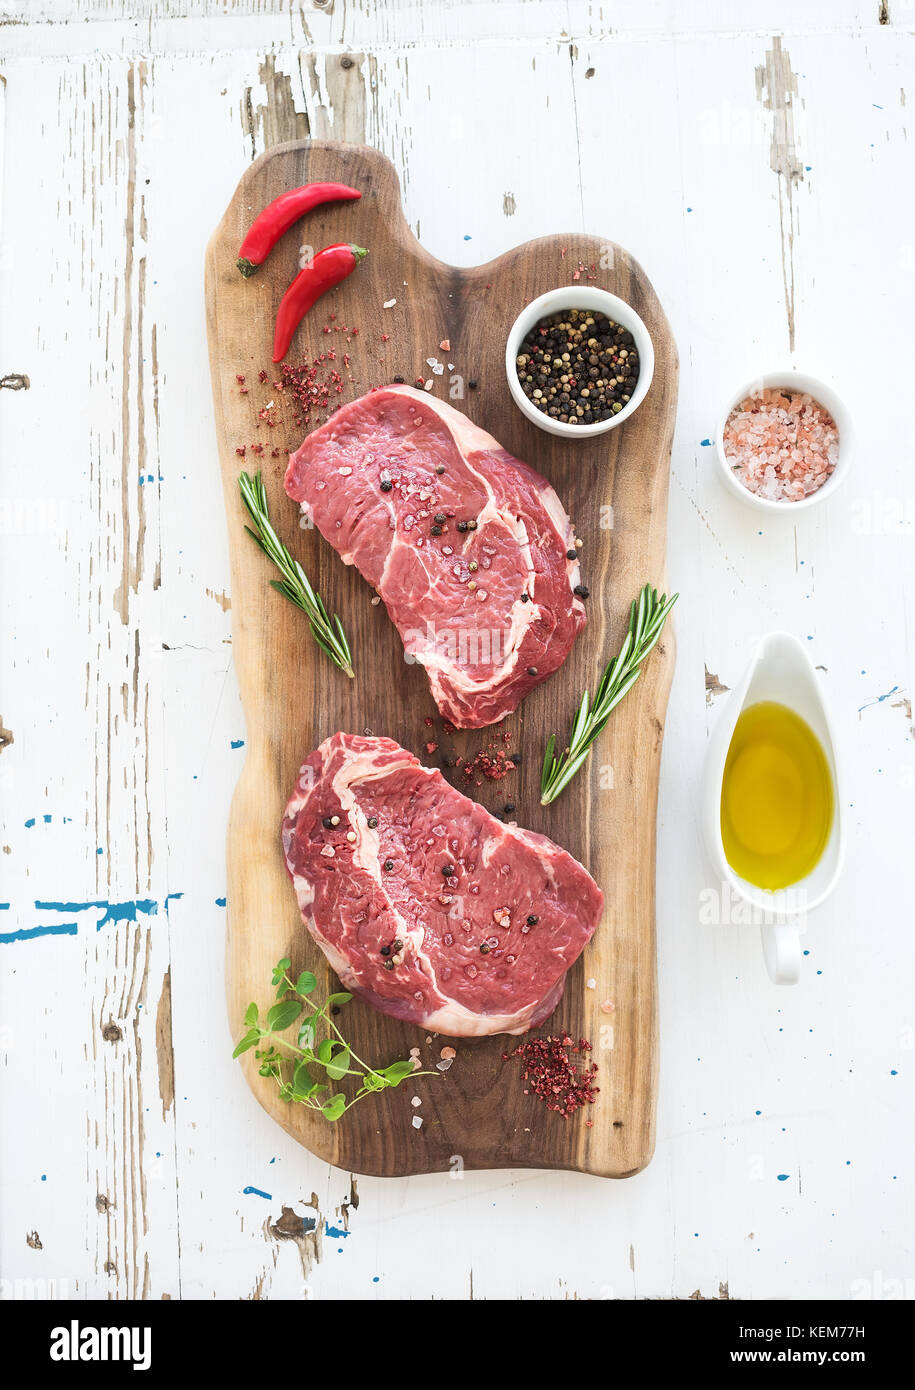 Raw fresh meat Ribeye steak entrecote and seasonings on cutting board over white wooden background. Stock Photo